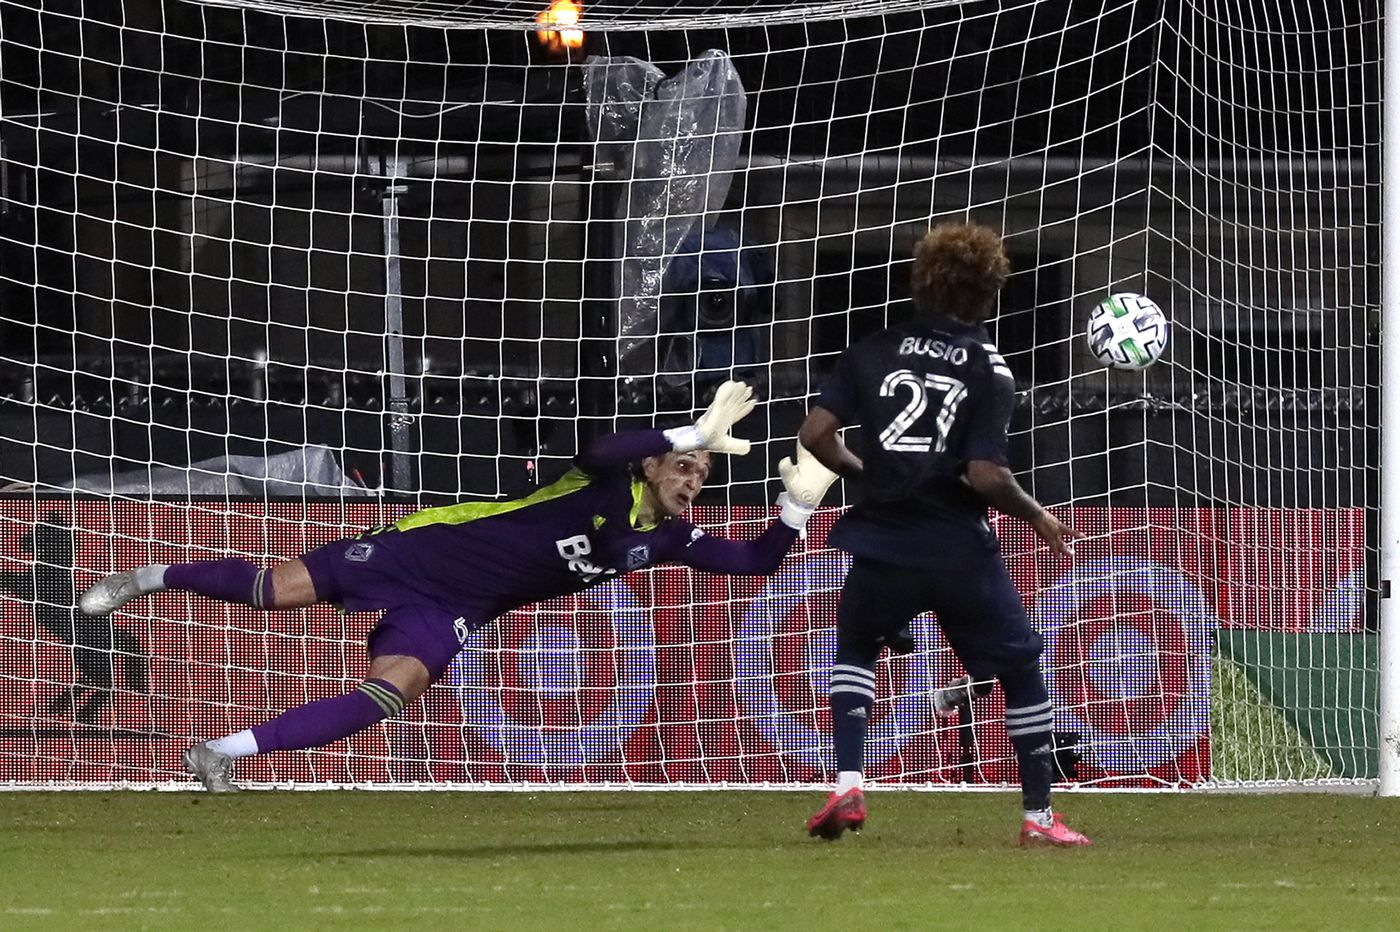 Union to play Kansas City in MLS tournament quarterfinals; NYCFC ousts Toronto